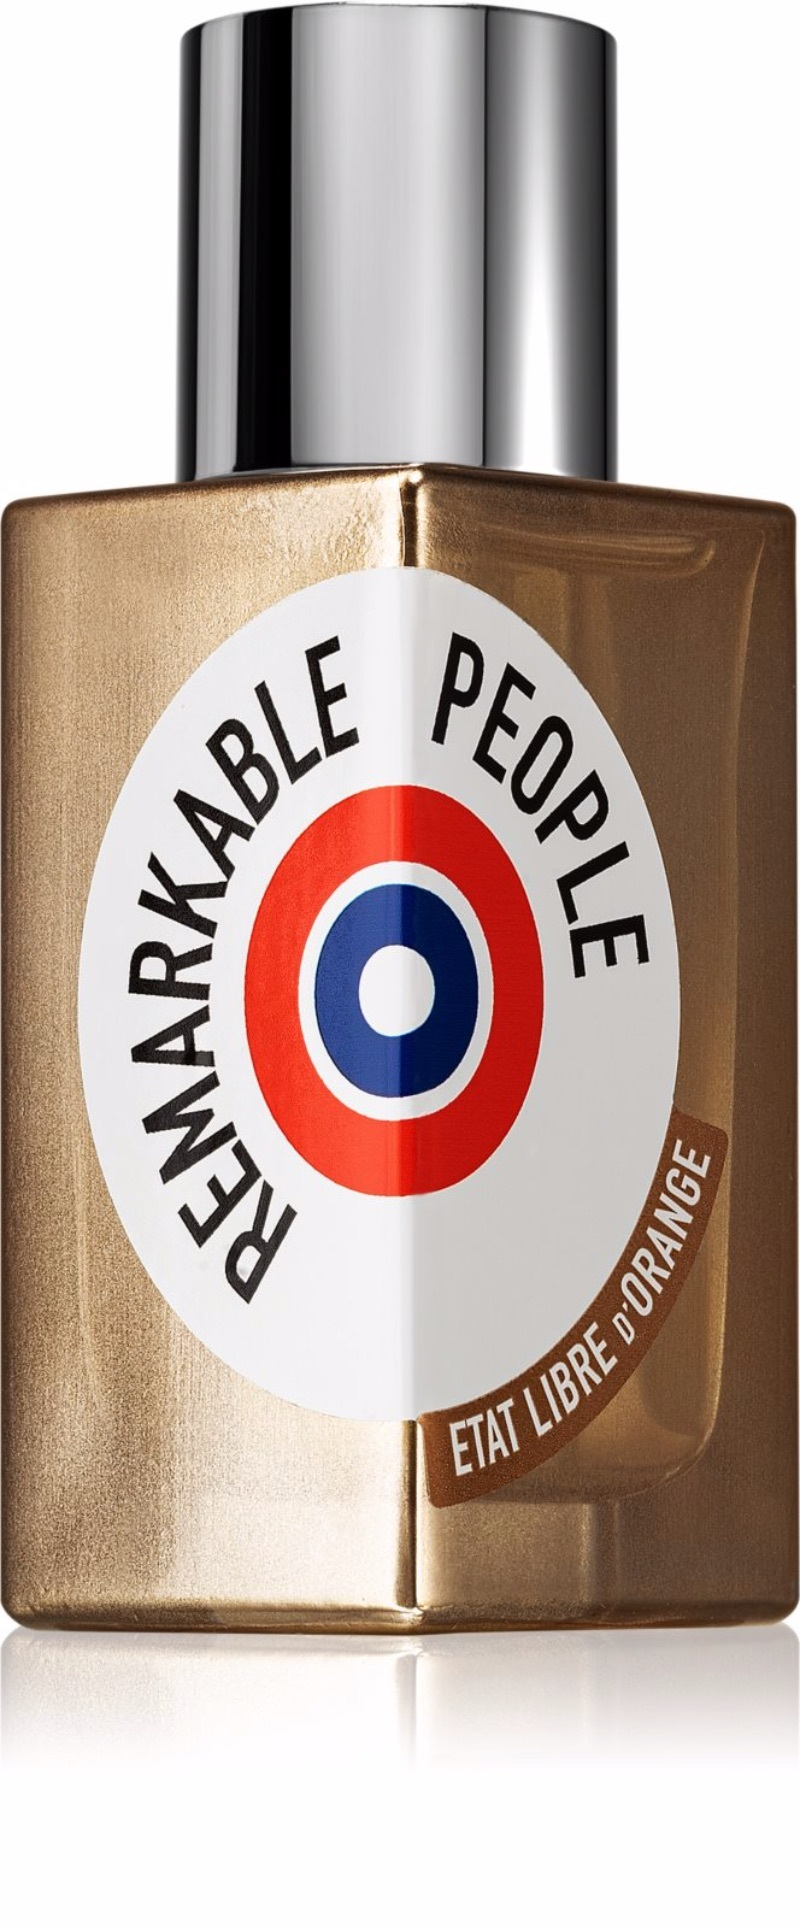 remarkable-people